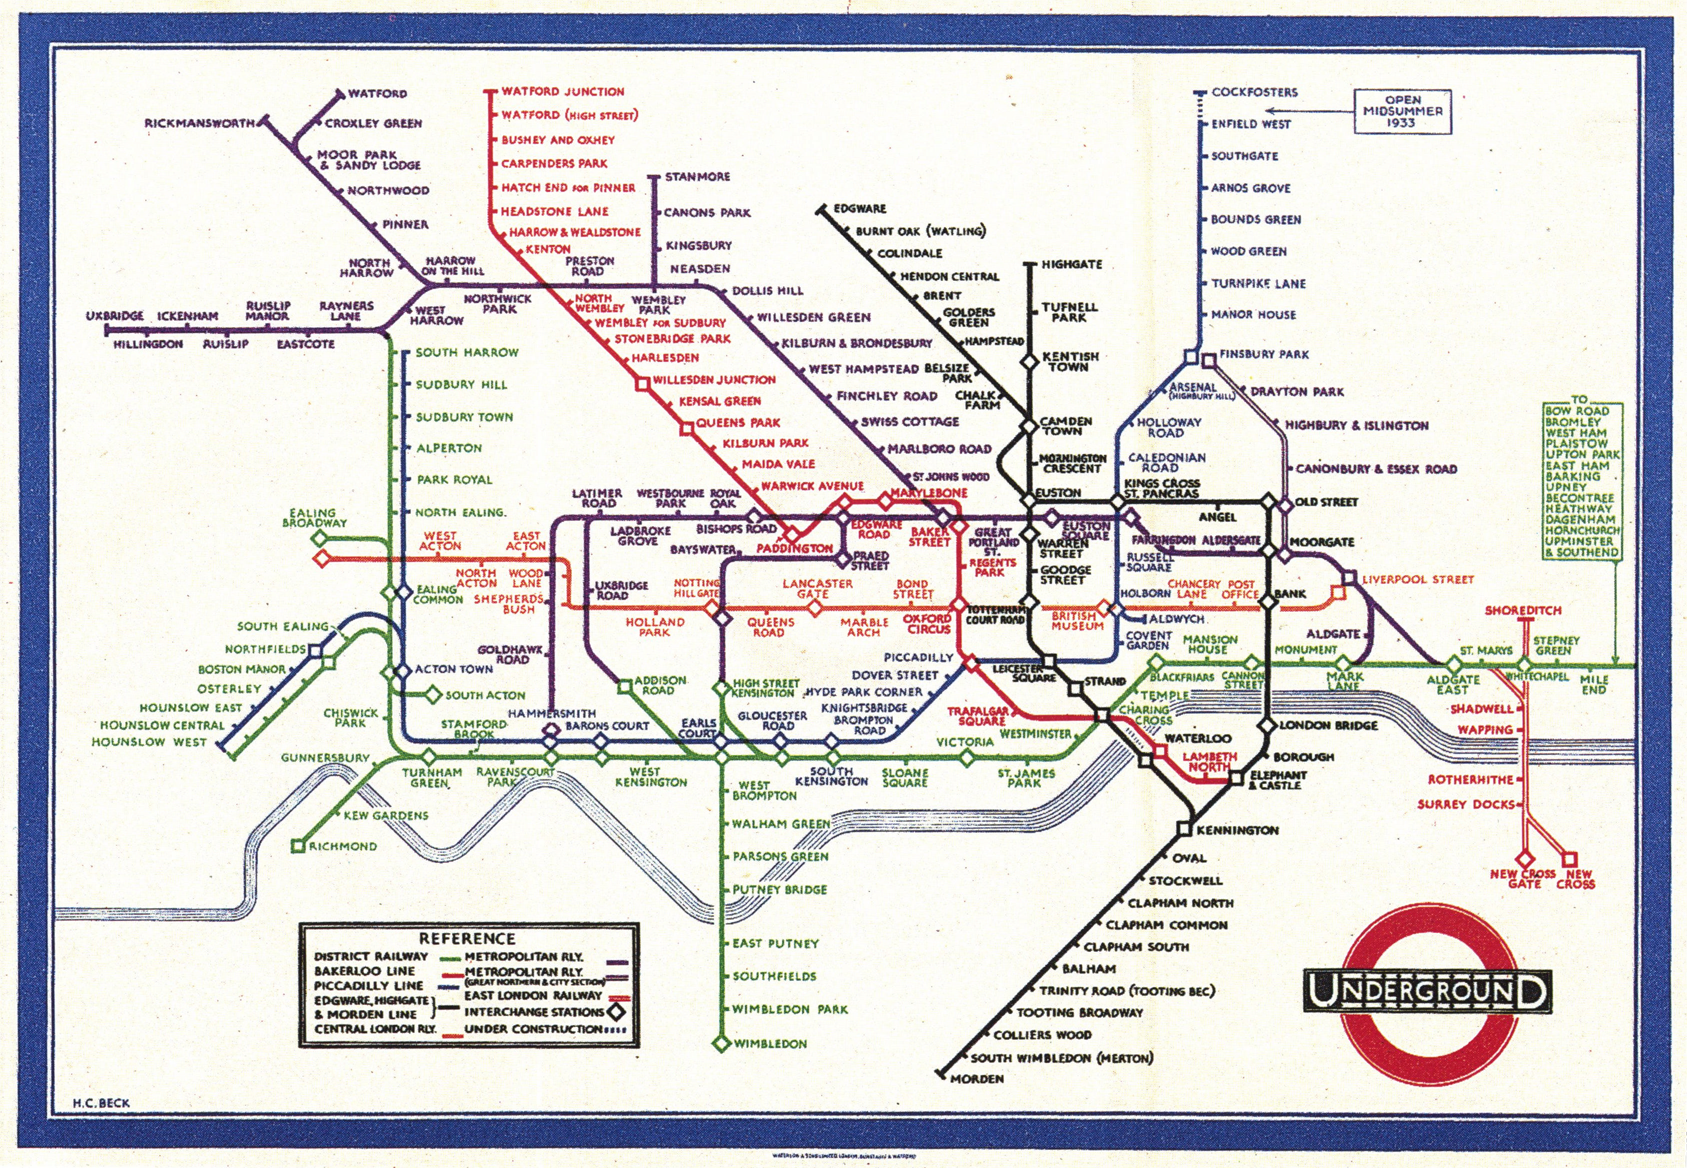 2 henry charles beck tube map january 1933 color lithograph first edition 90 x 63 in printed at waterlow sons ltd london dunstable watford